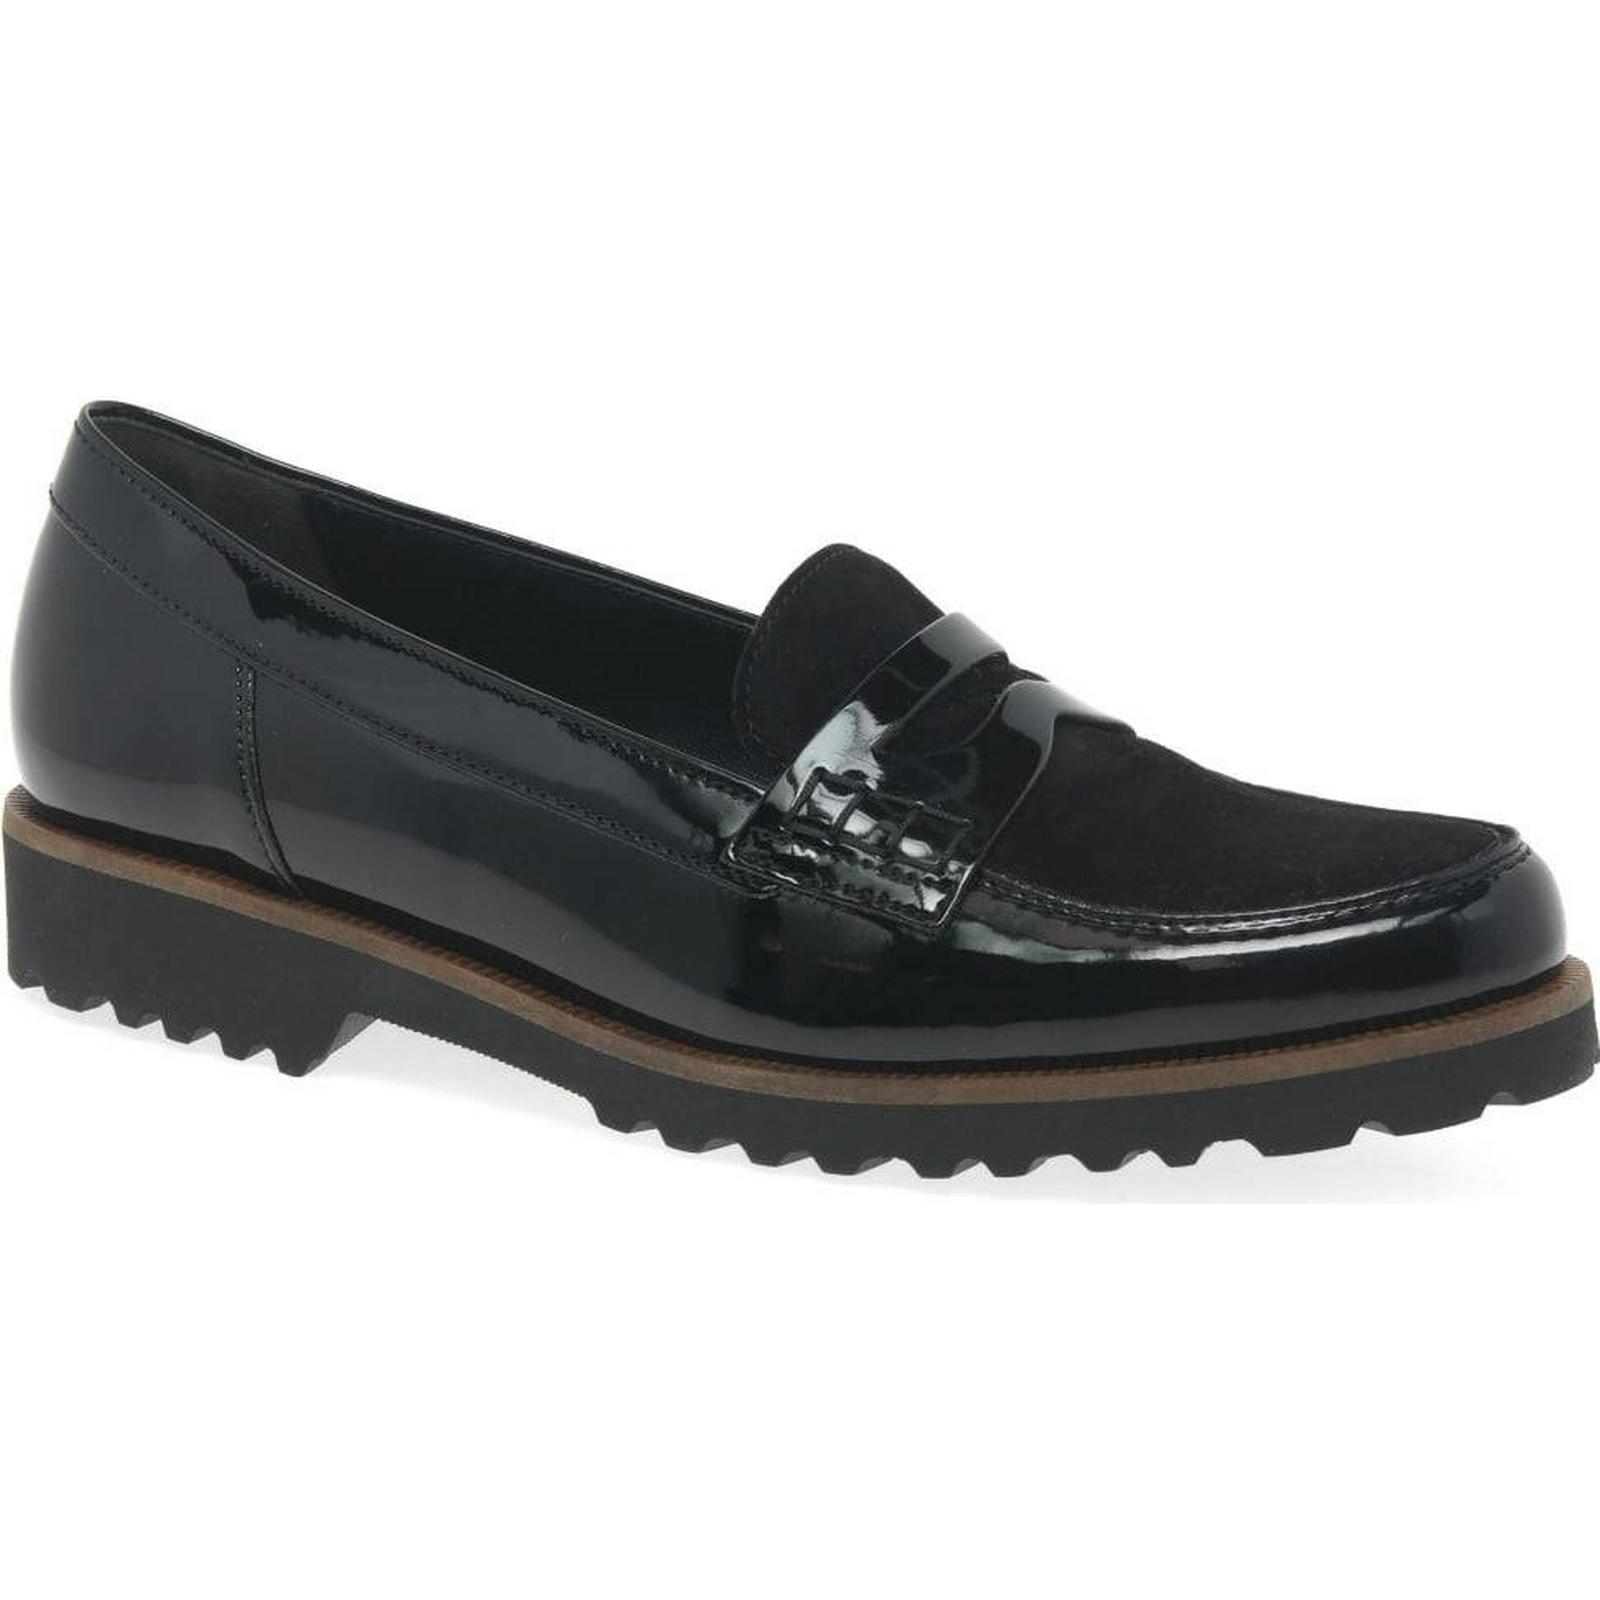 Gabor Skipper Womens Casual II, Shoes Colour: Black Patent/Suede II, Casual Size: b09e38